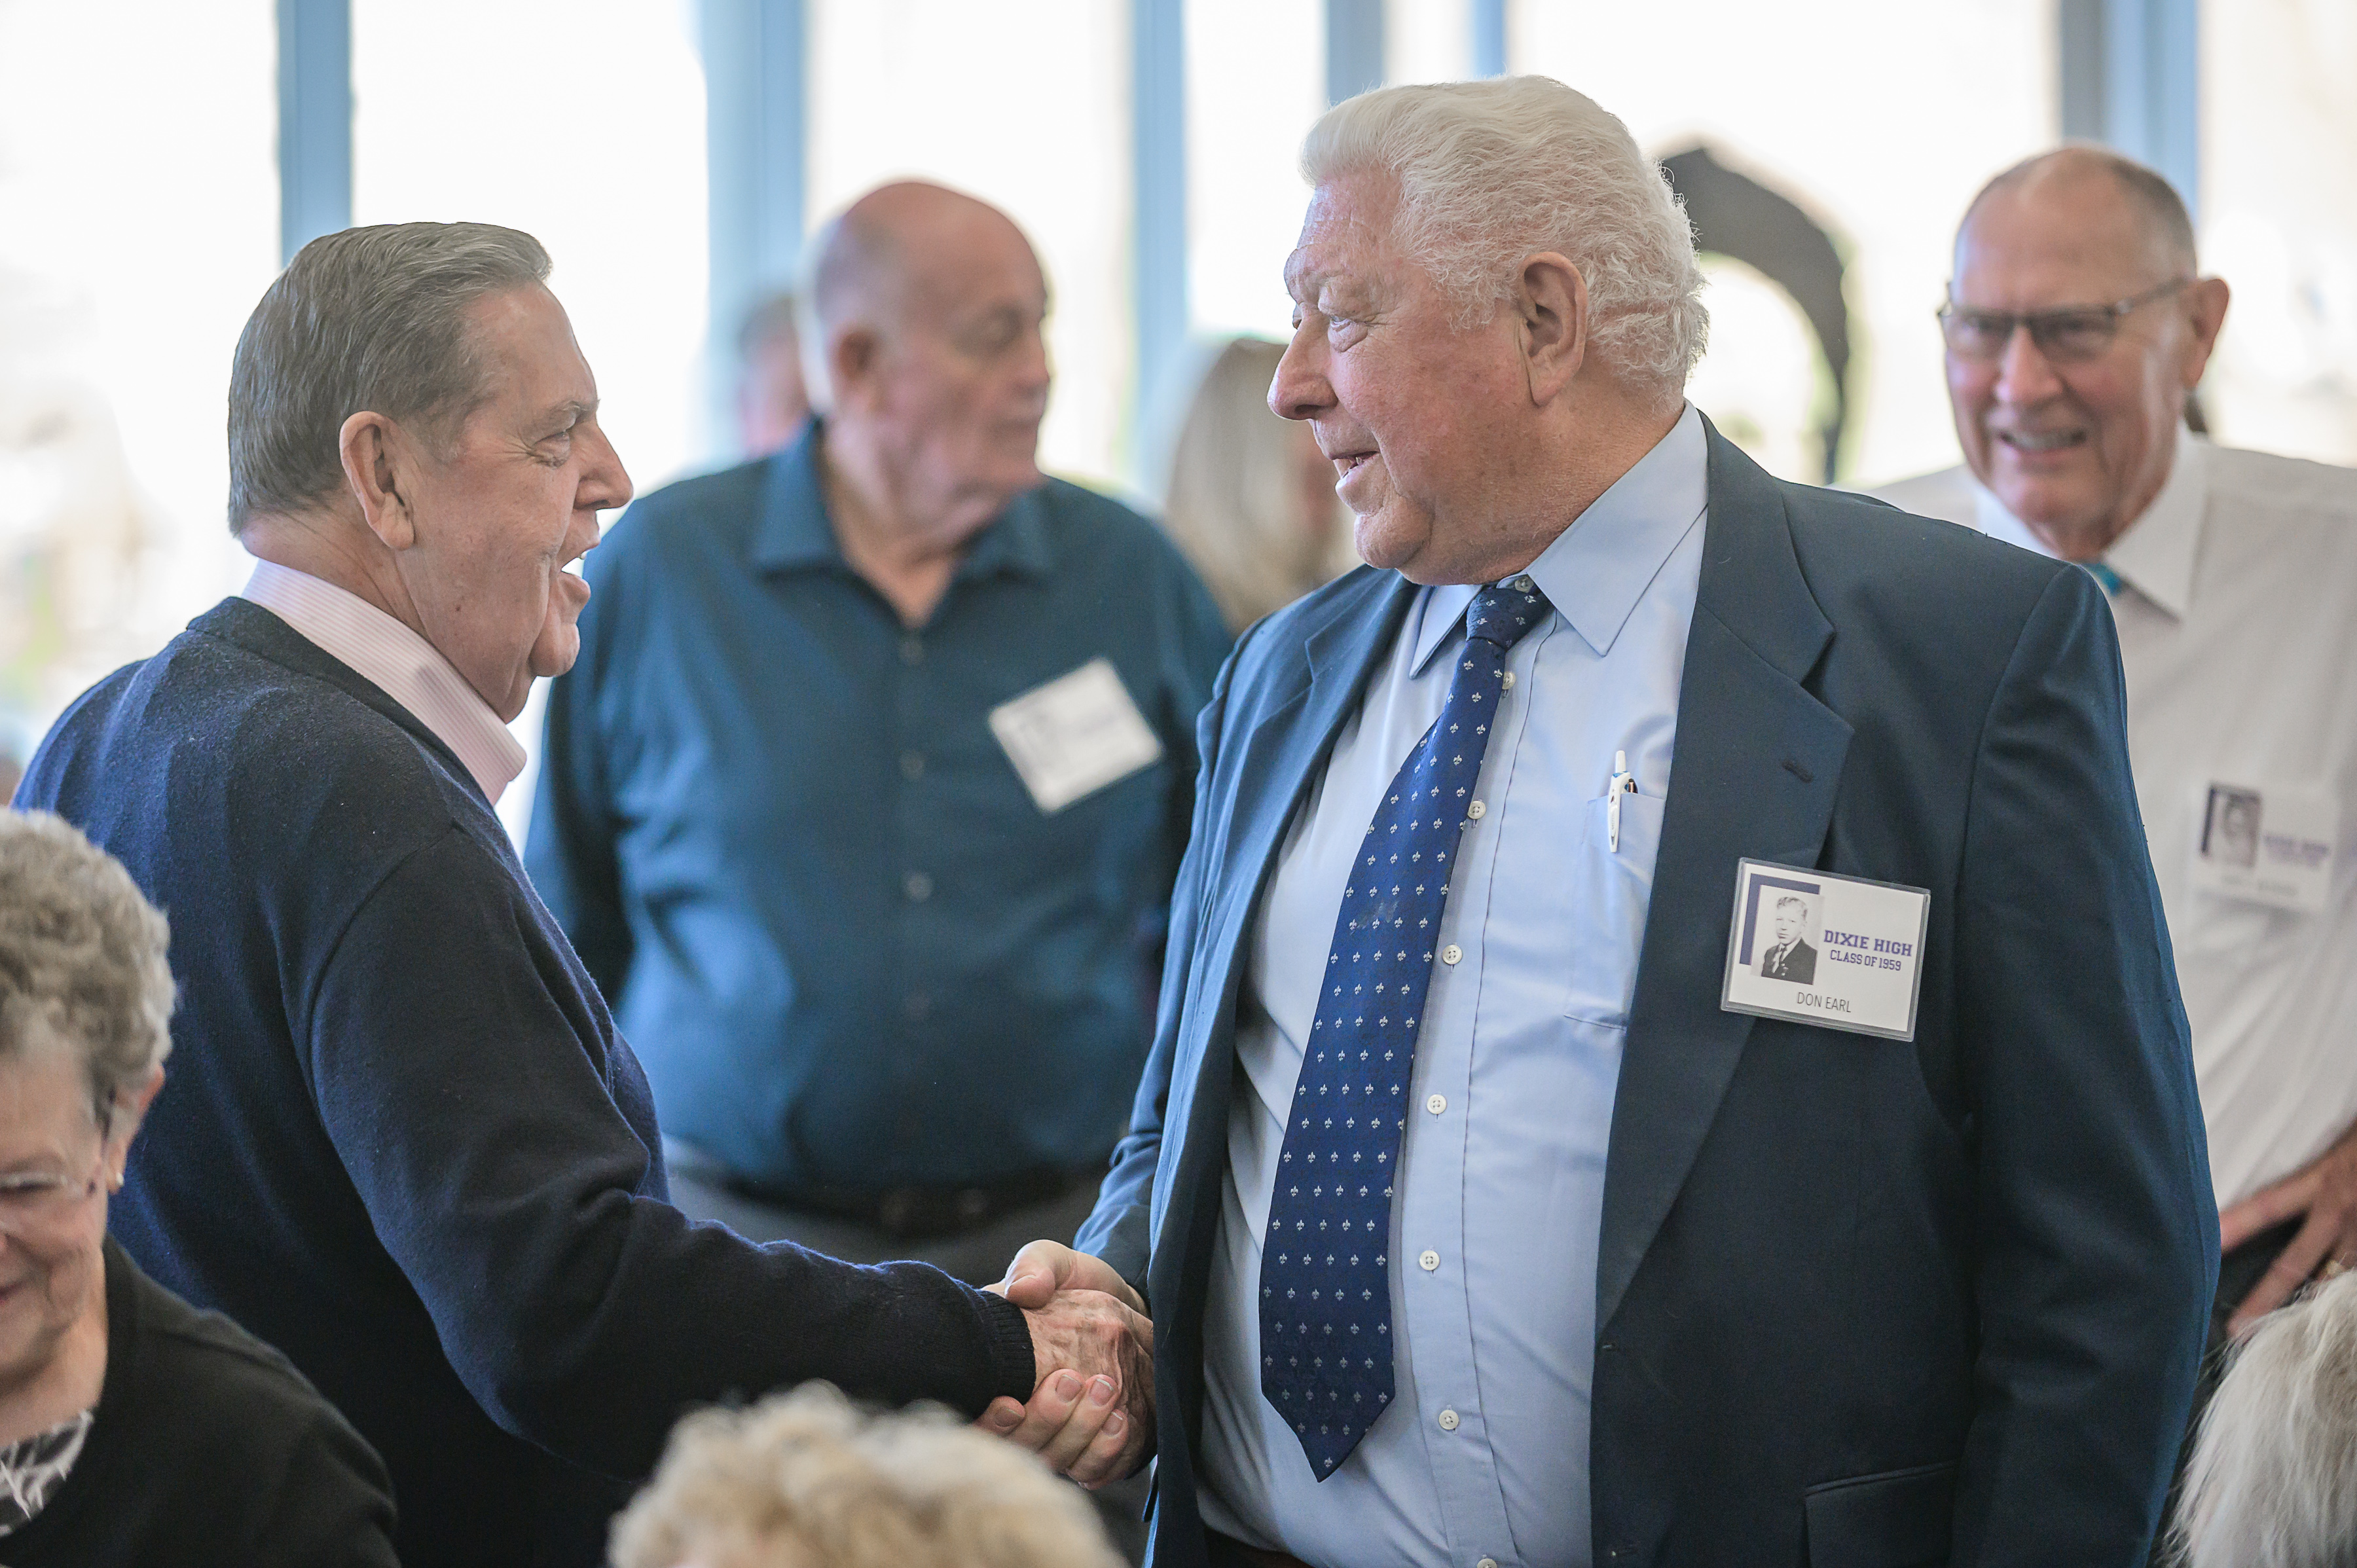 Elder Jeffrey R. Holland, left, a member of the Quorum of the Twelve Apostles of The Church of Jesus Christ of Latter-day Saints, shakes hands with classmate Don Earl at the 60-year reunion for the Dixie High School class of 1959 on Thursday, Oct. 24, 2019, in St. George.